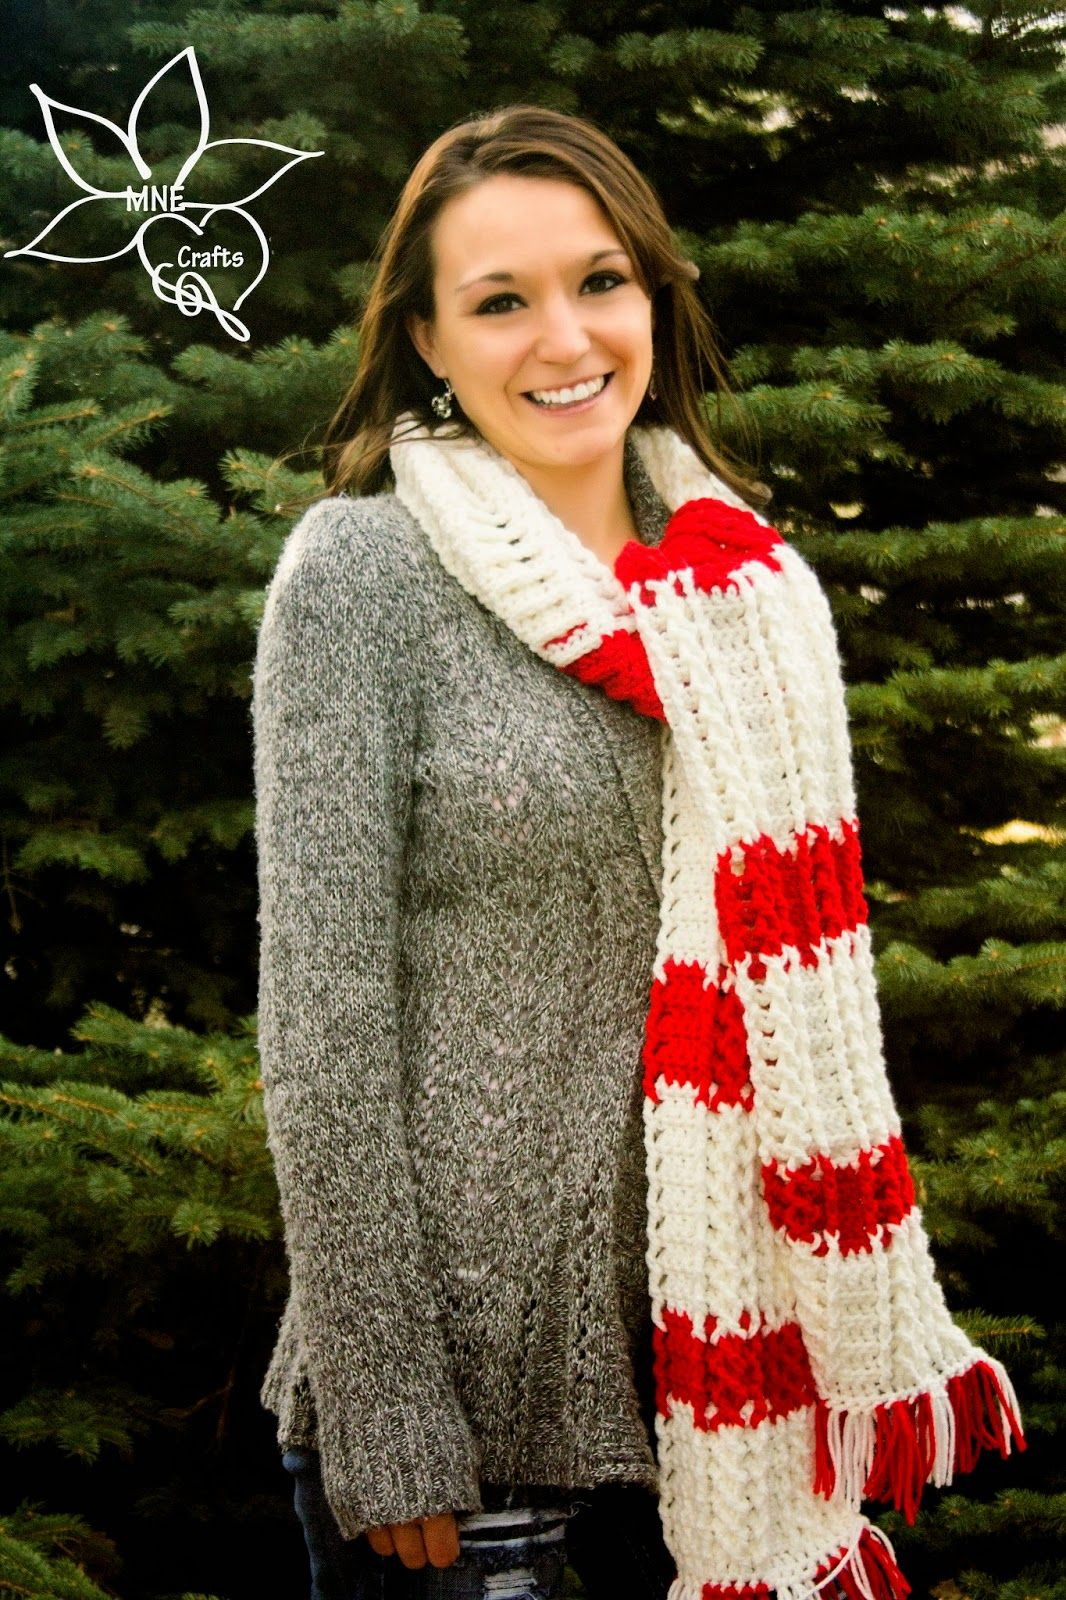 Mne Crafts Candy Cane Cables Scarf Free Crochet Pattern